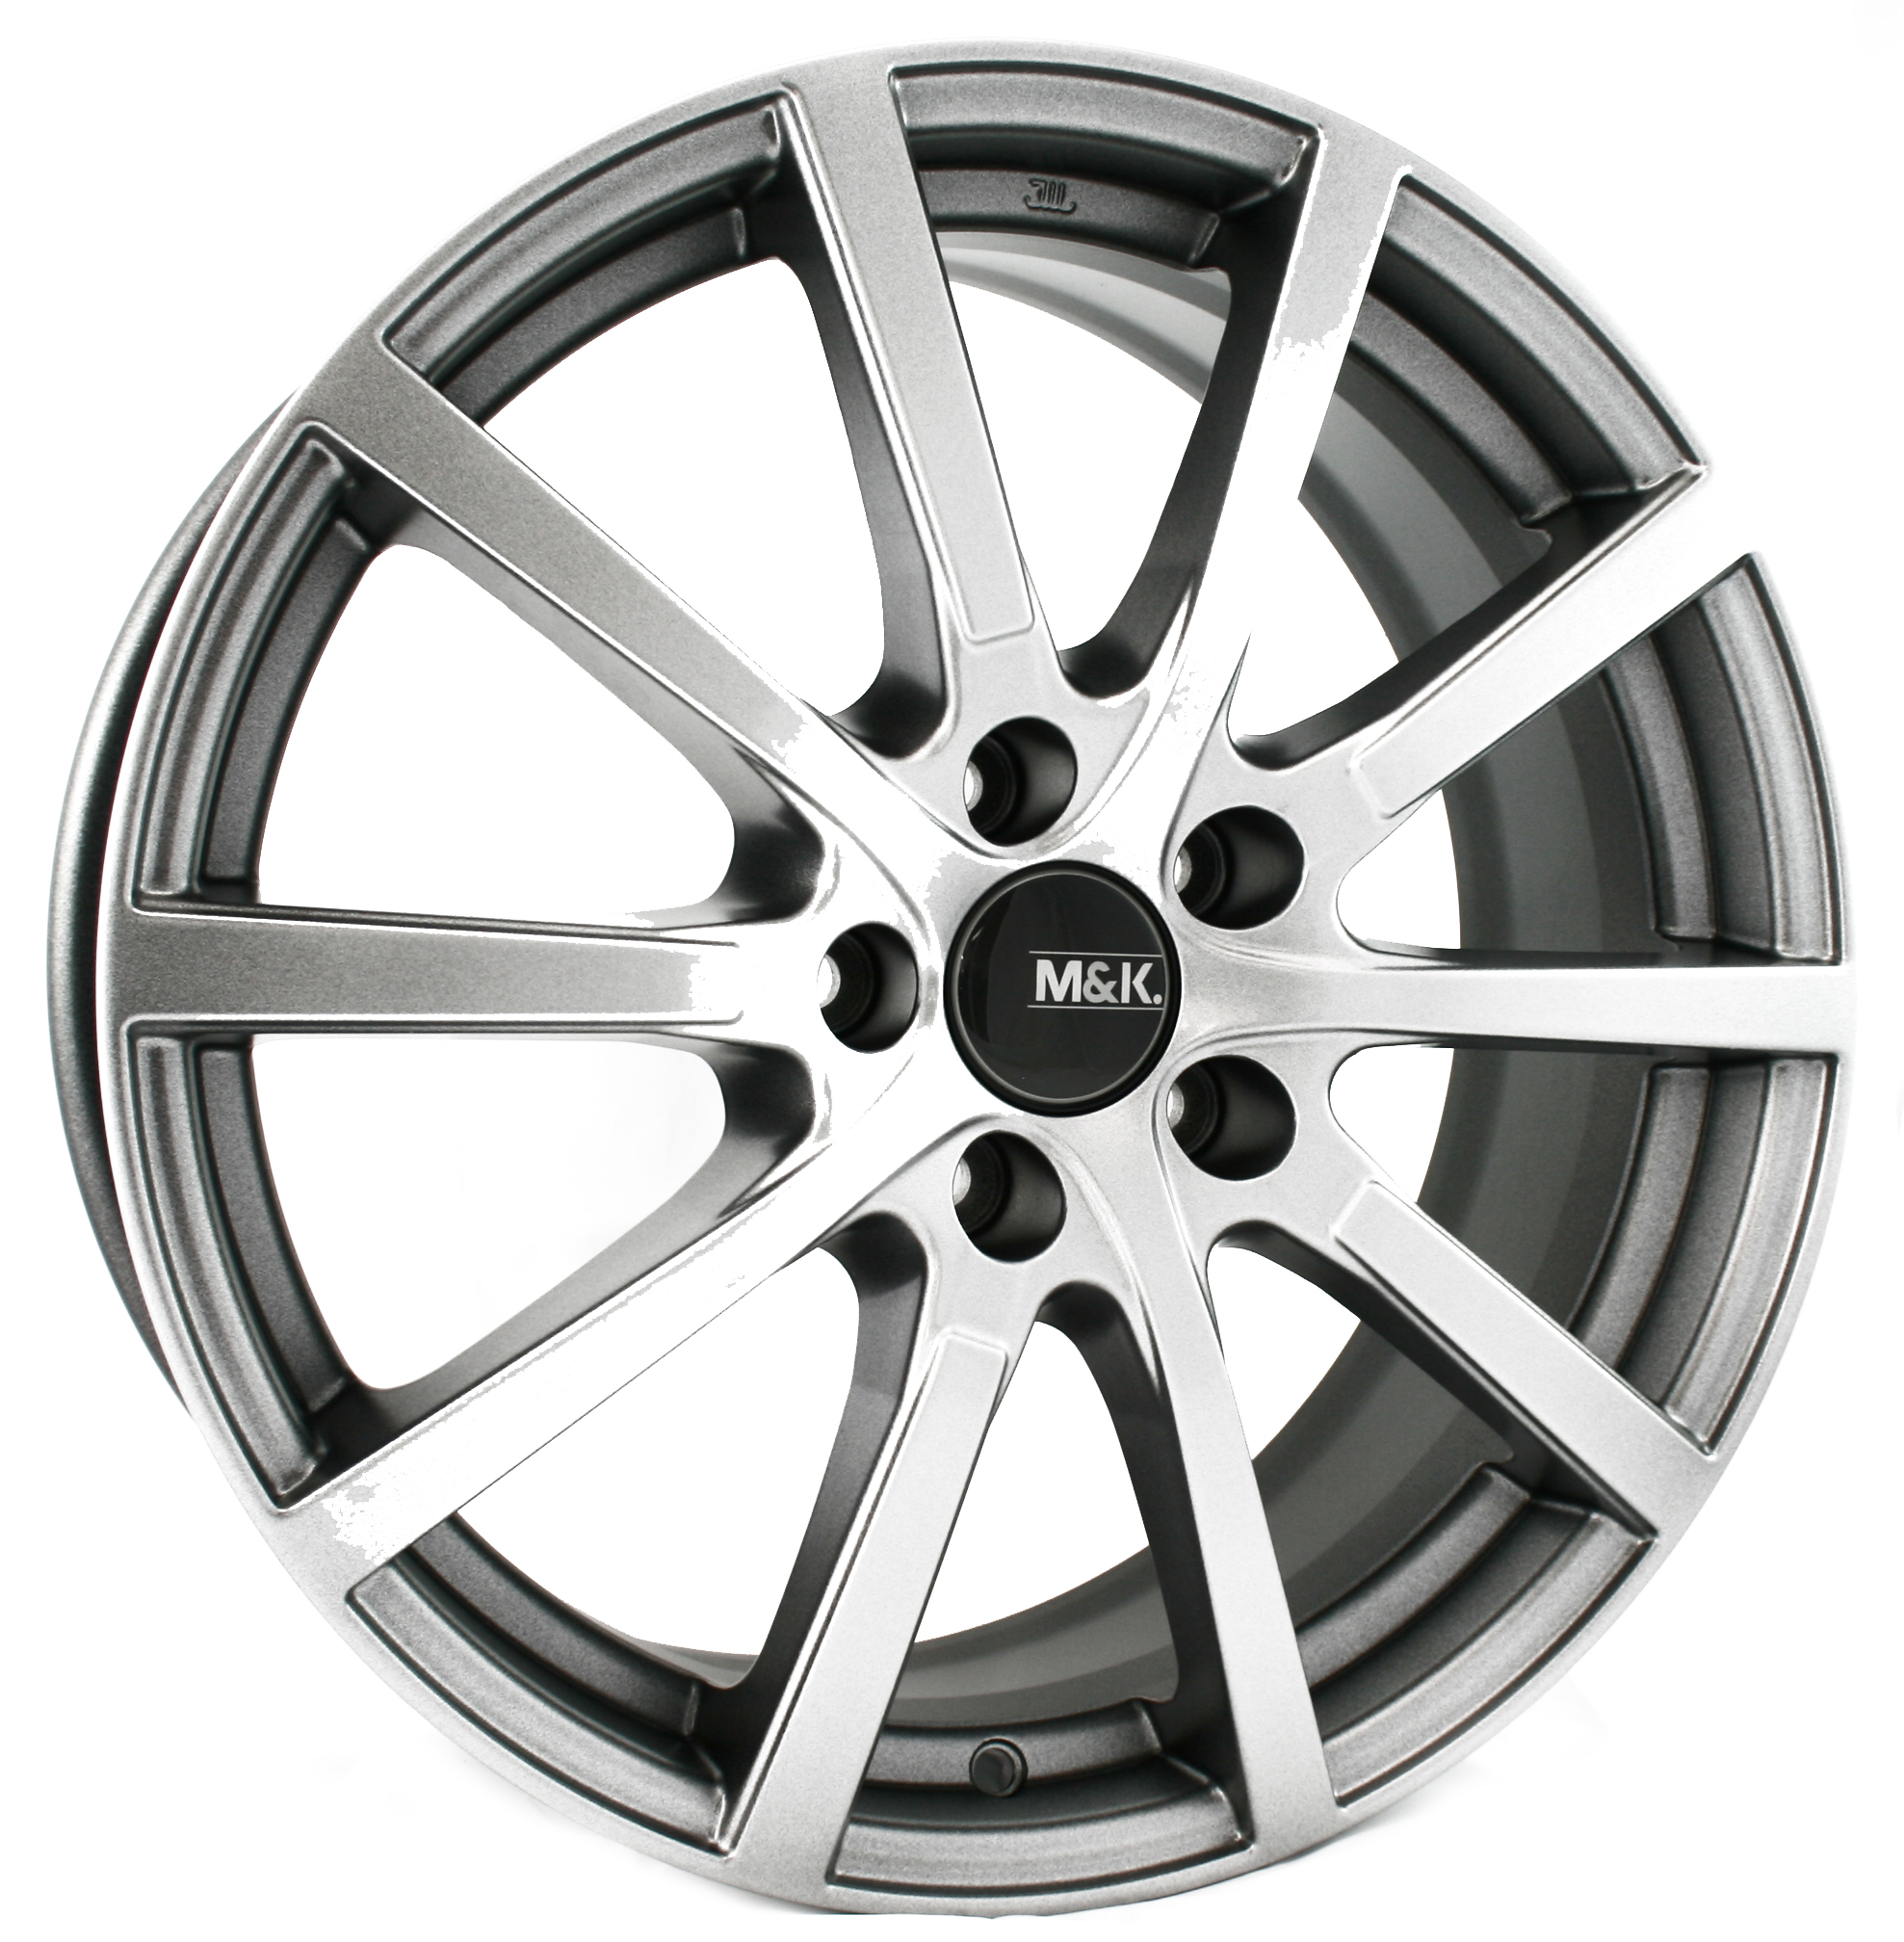 M&K Nebula Alloy Wheels